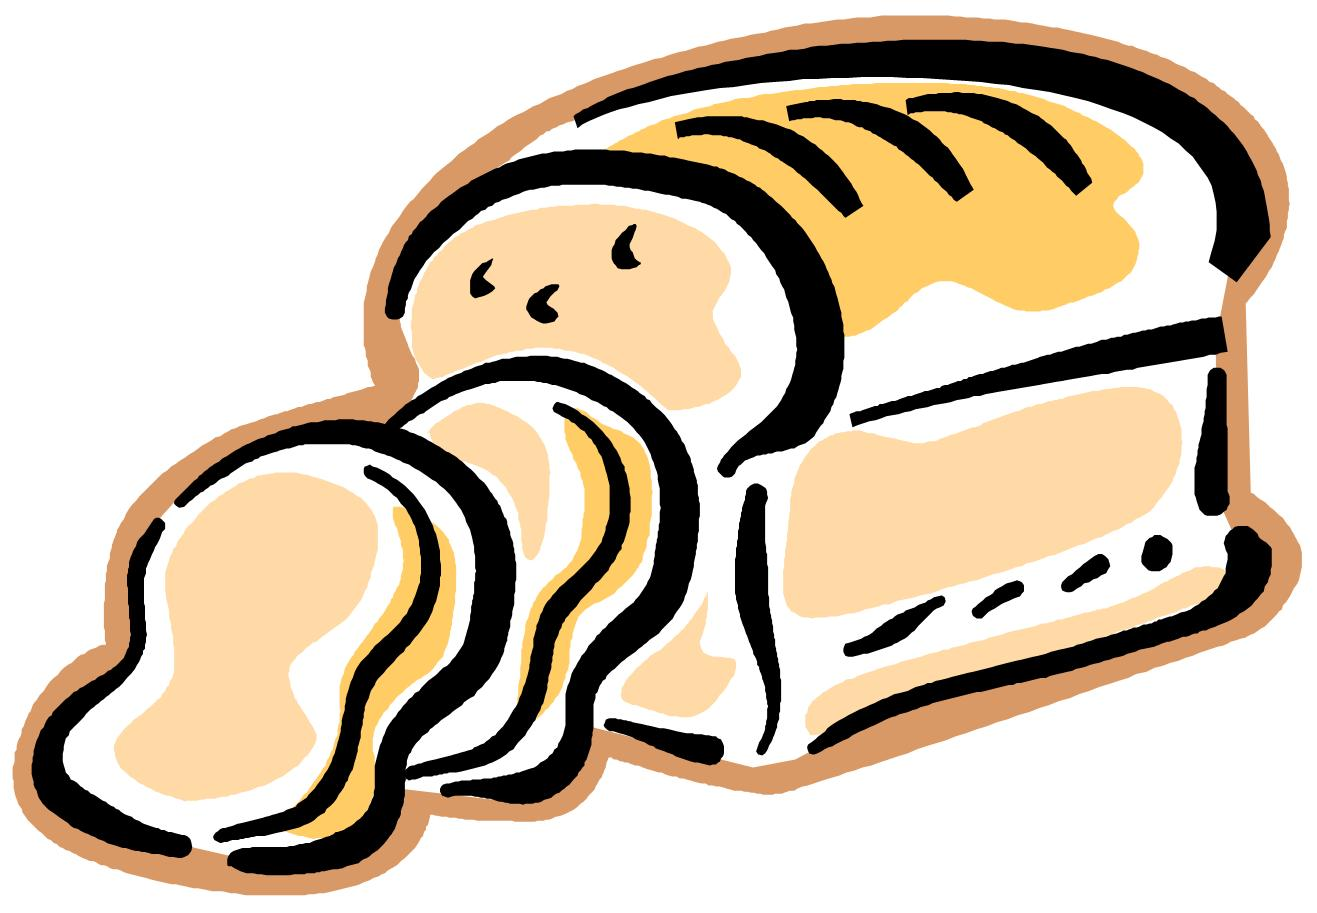 Clip Art Loaf Of Bread Clipart loaf of bread clipart kid template best